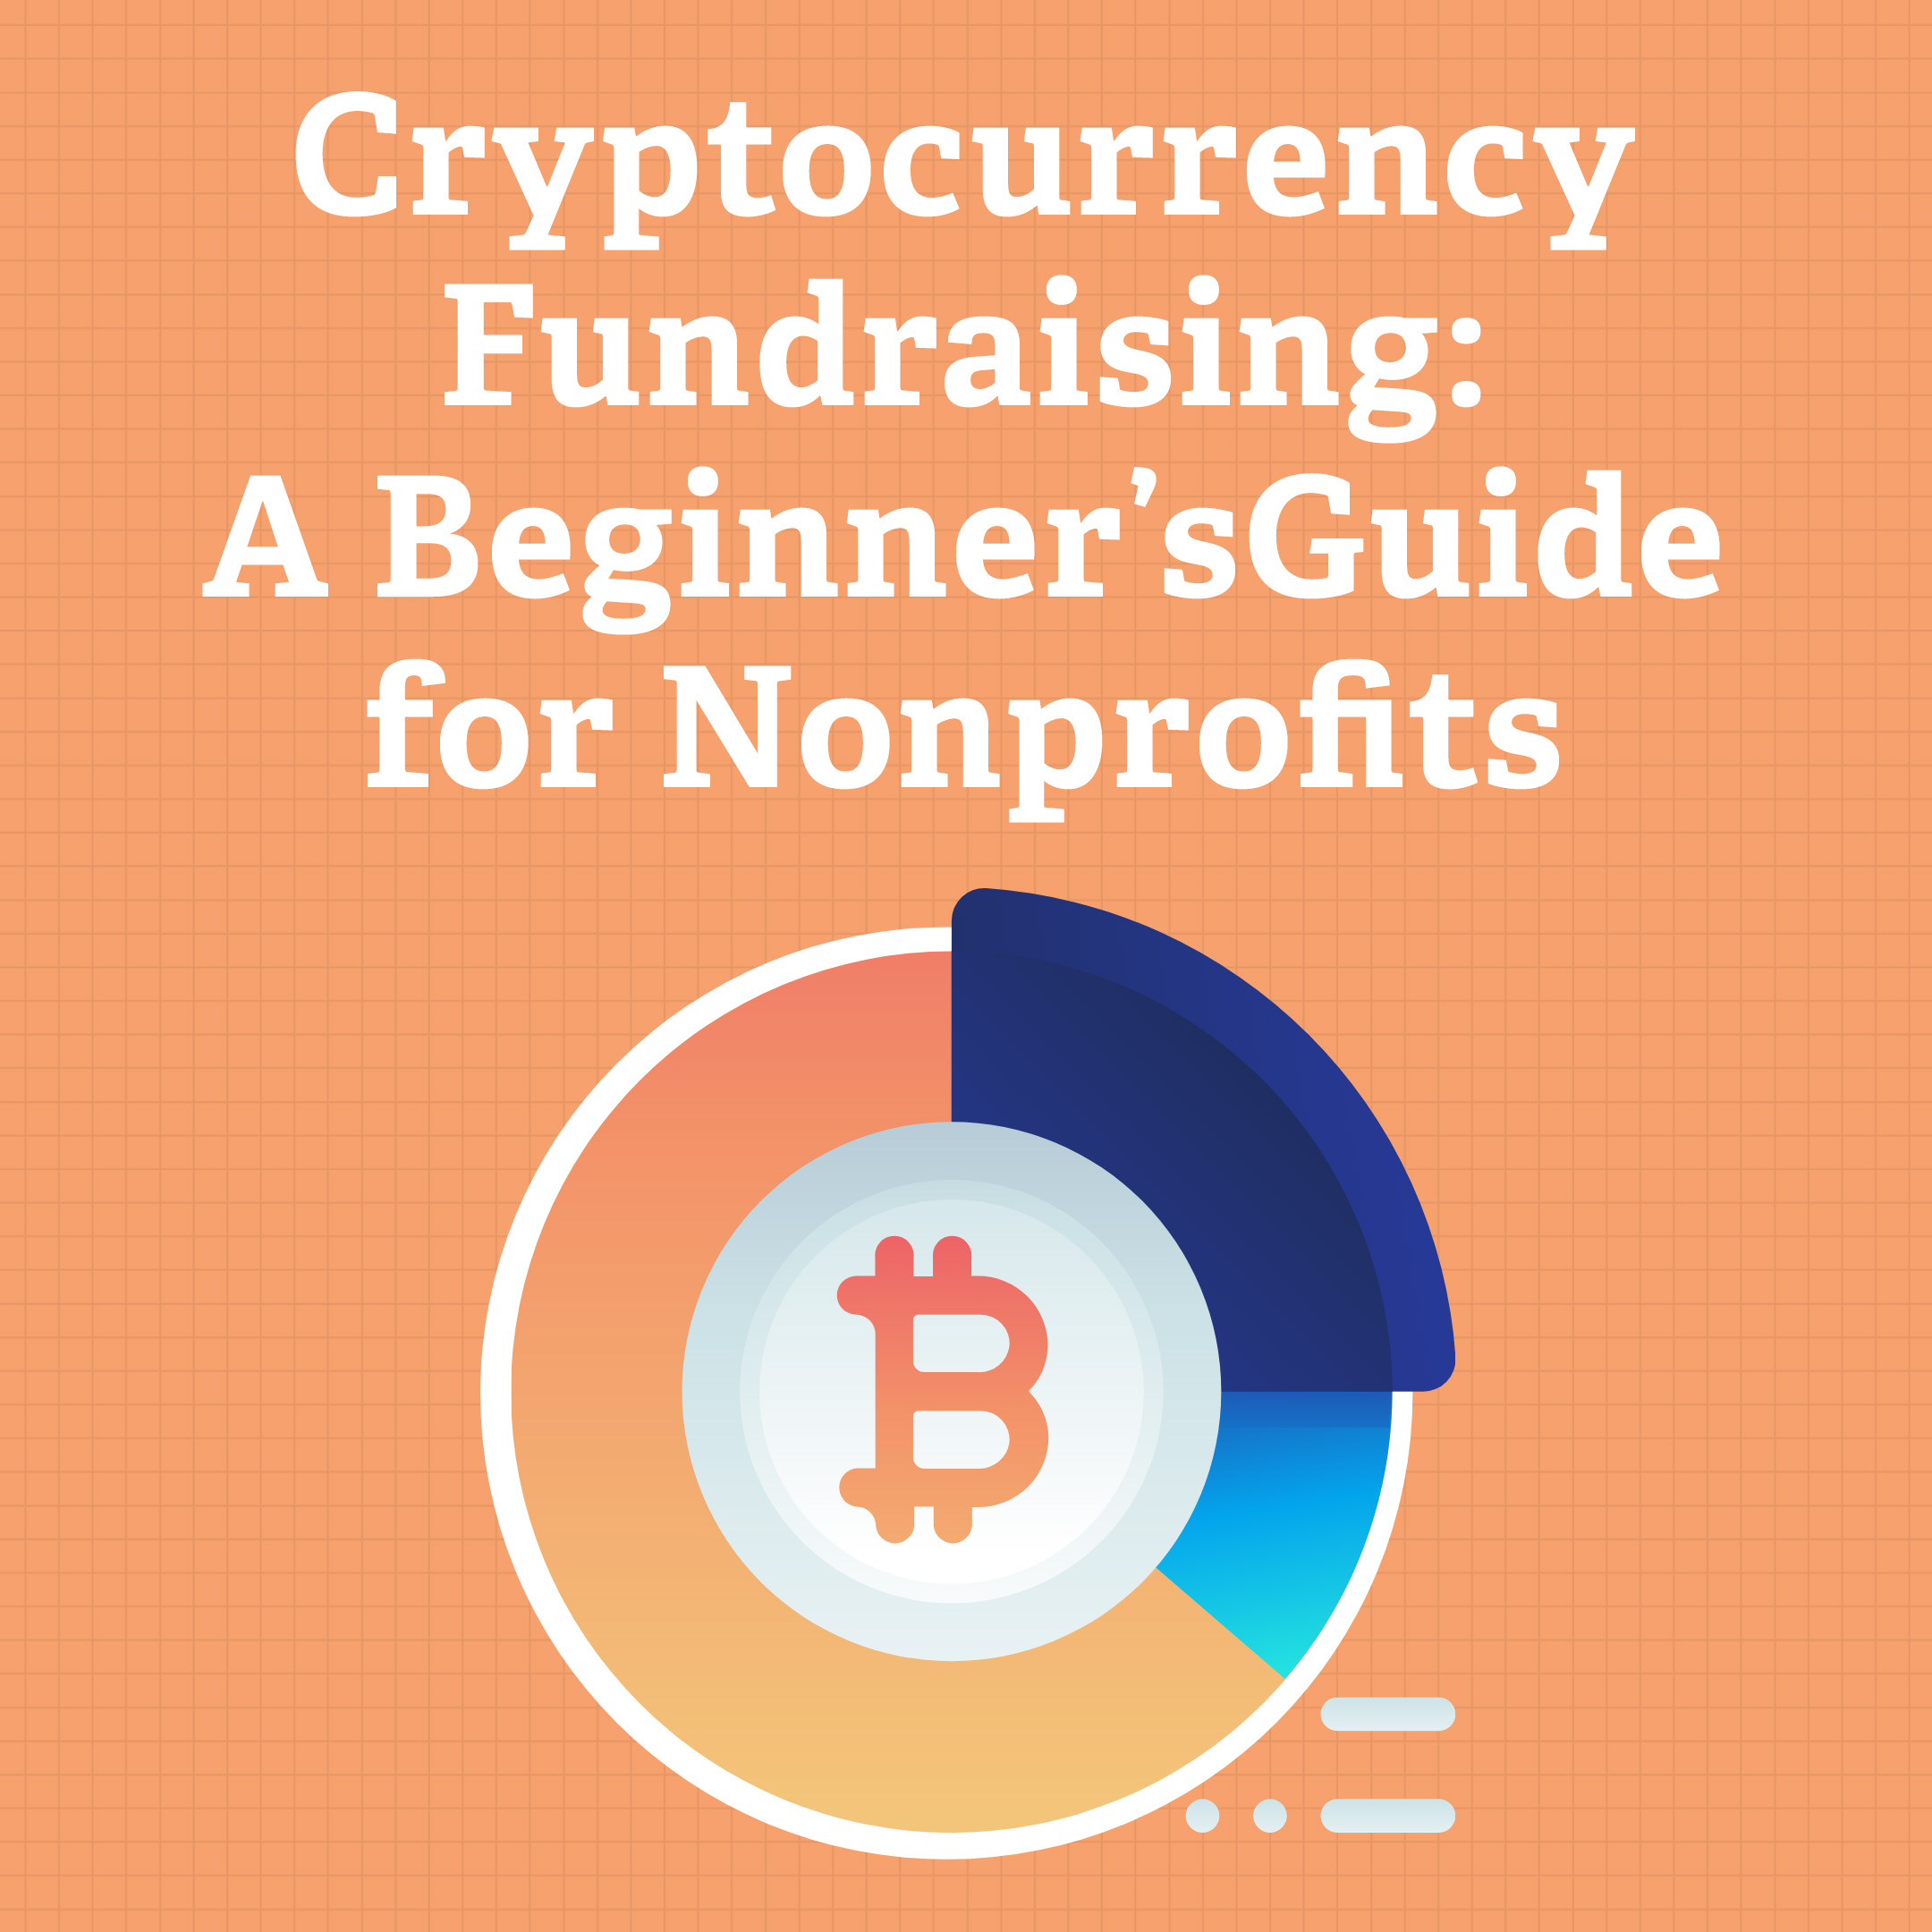 Cryptocurrency Fundraising: A Beginner's Guide for Nonprofits